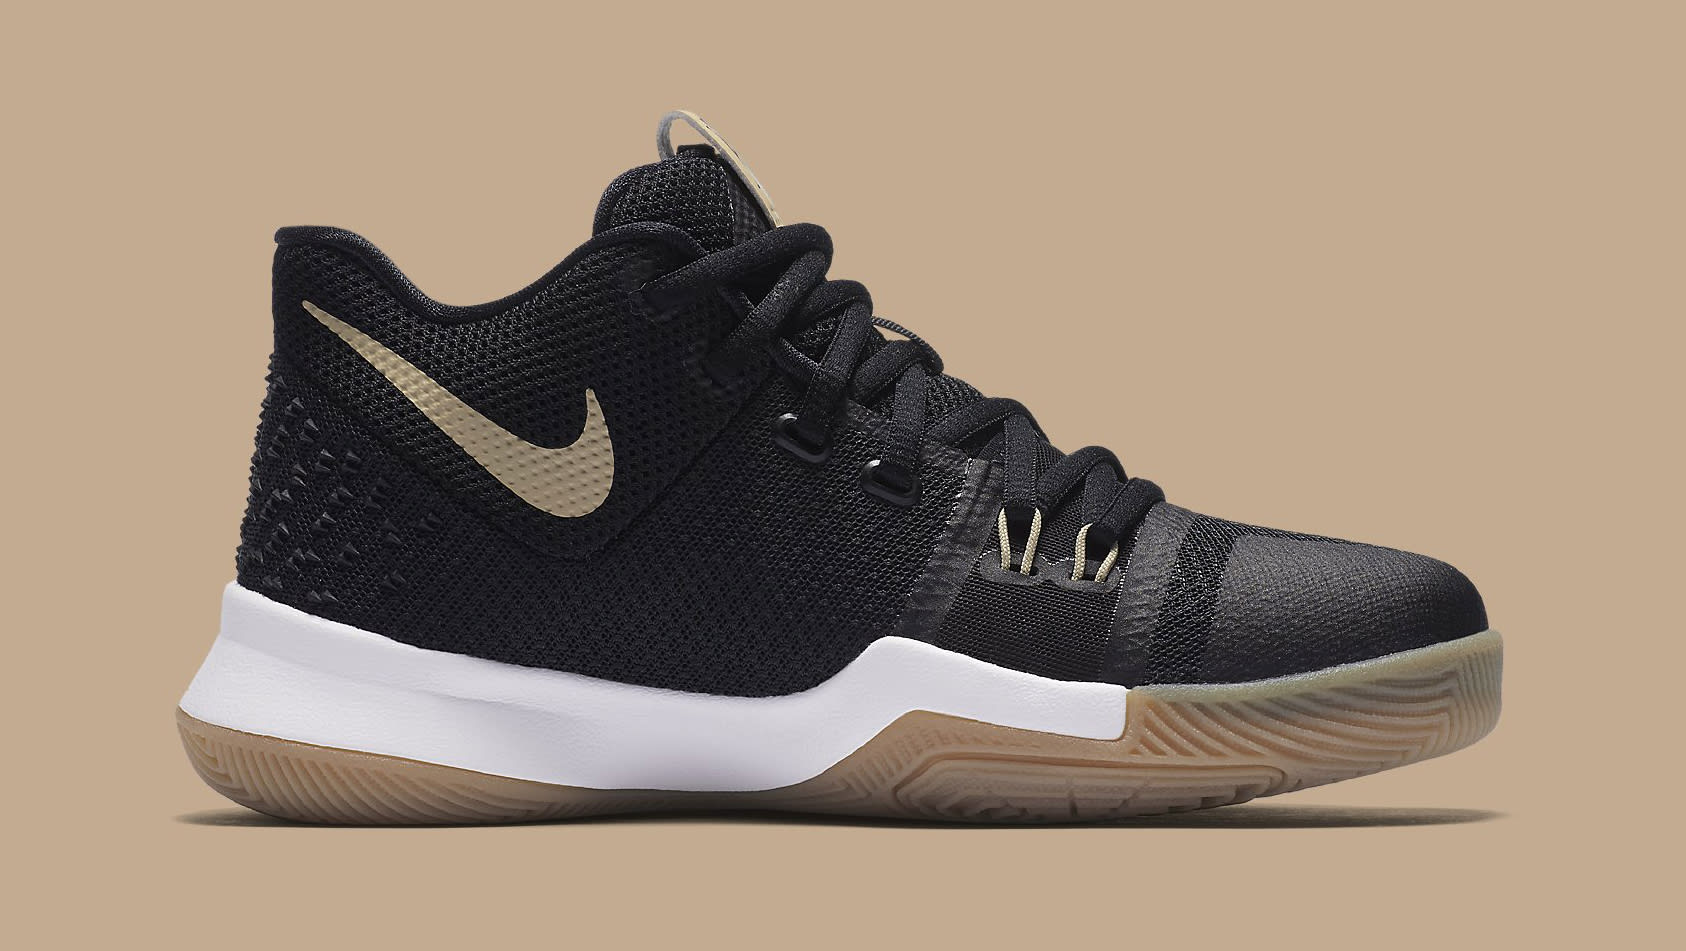 3bcc6521532e ... Image via Nike Nike Kyrie 3 No Diving 859466-092 Medial Nike Kyrie 3  Badge of Honor Black and Gum Light Brown-Linen ...